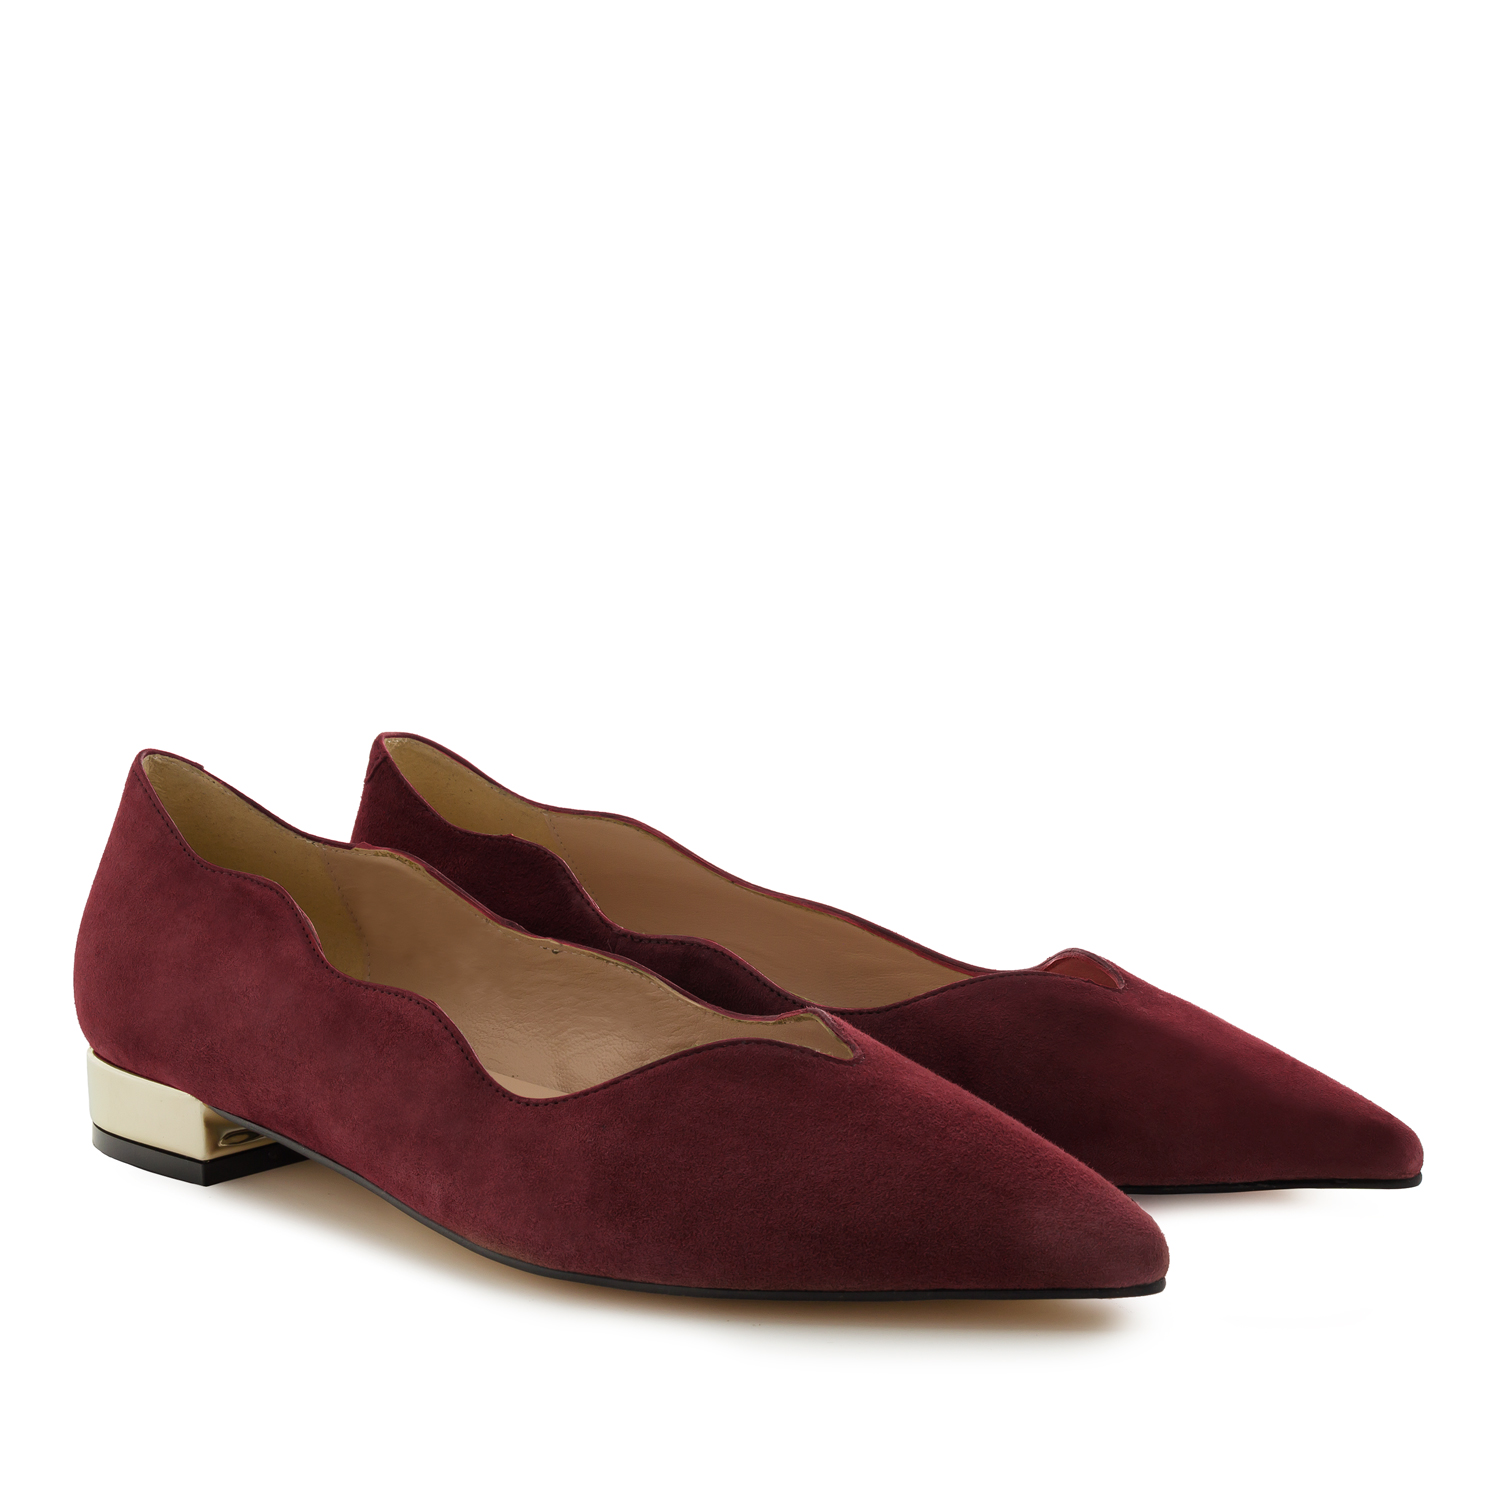 Waved Upper Ballet Flats in Burgundy Nappa Leather